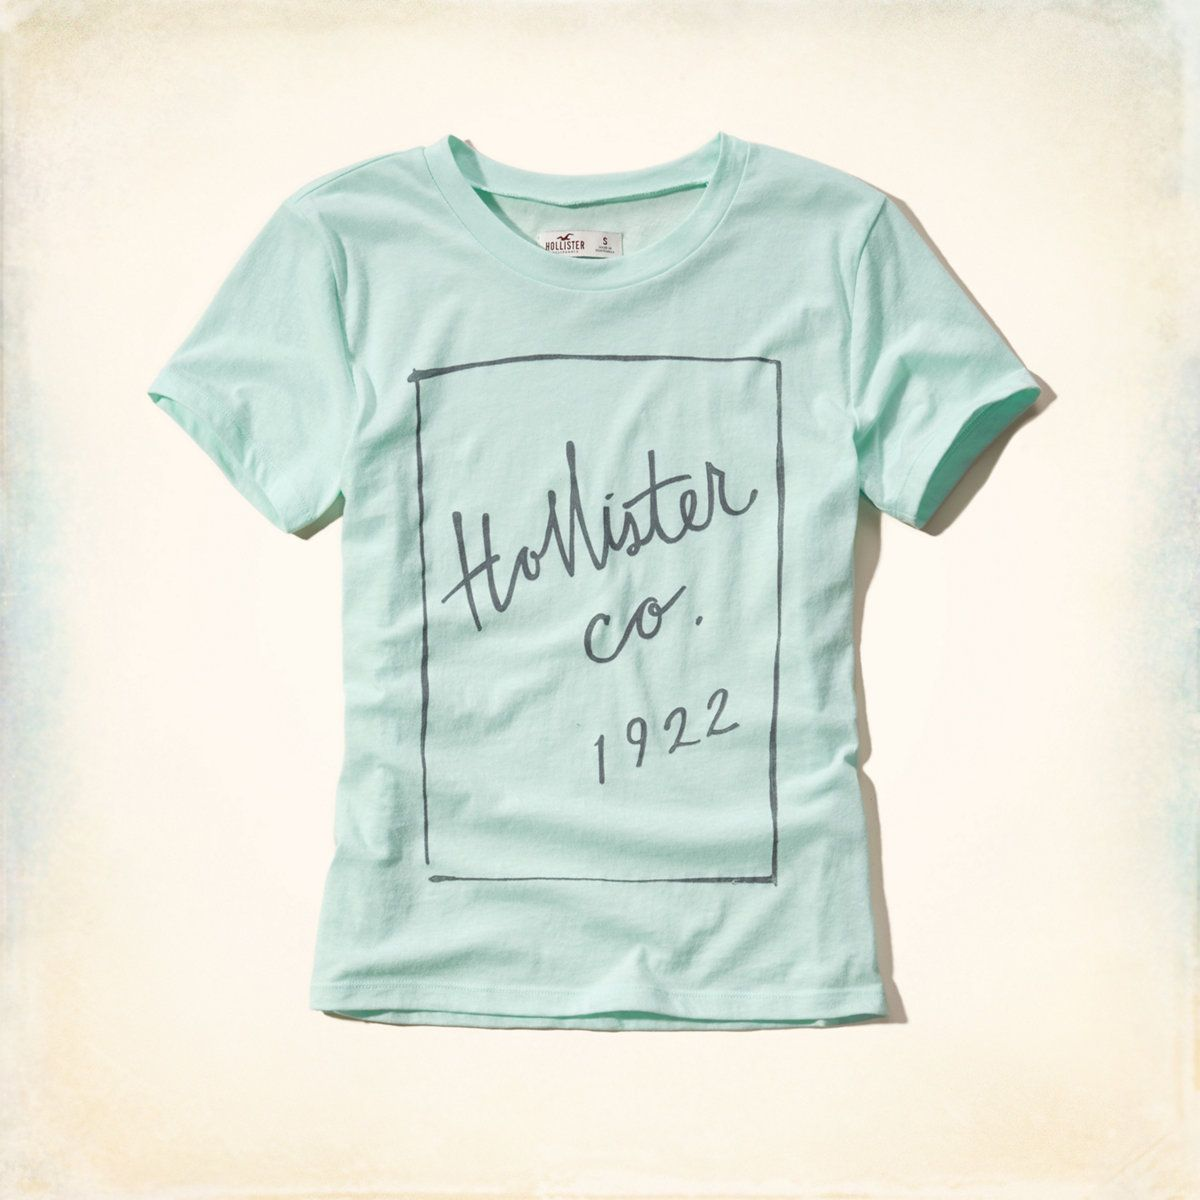 Girls Hollister Graphic Tee | Girls Tops | HollisterCo.com | Aero ...